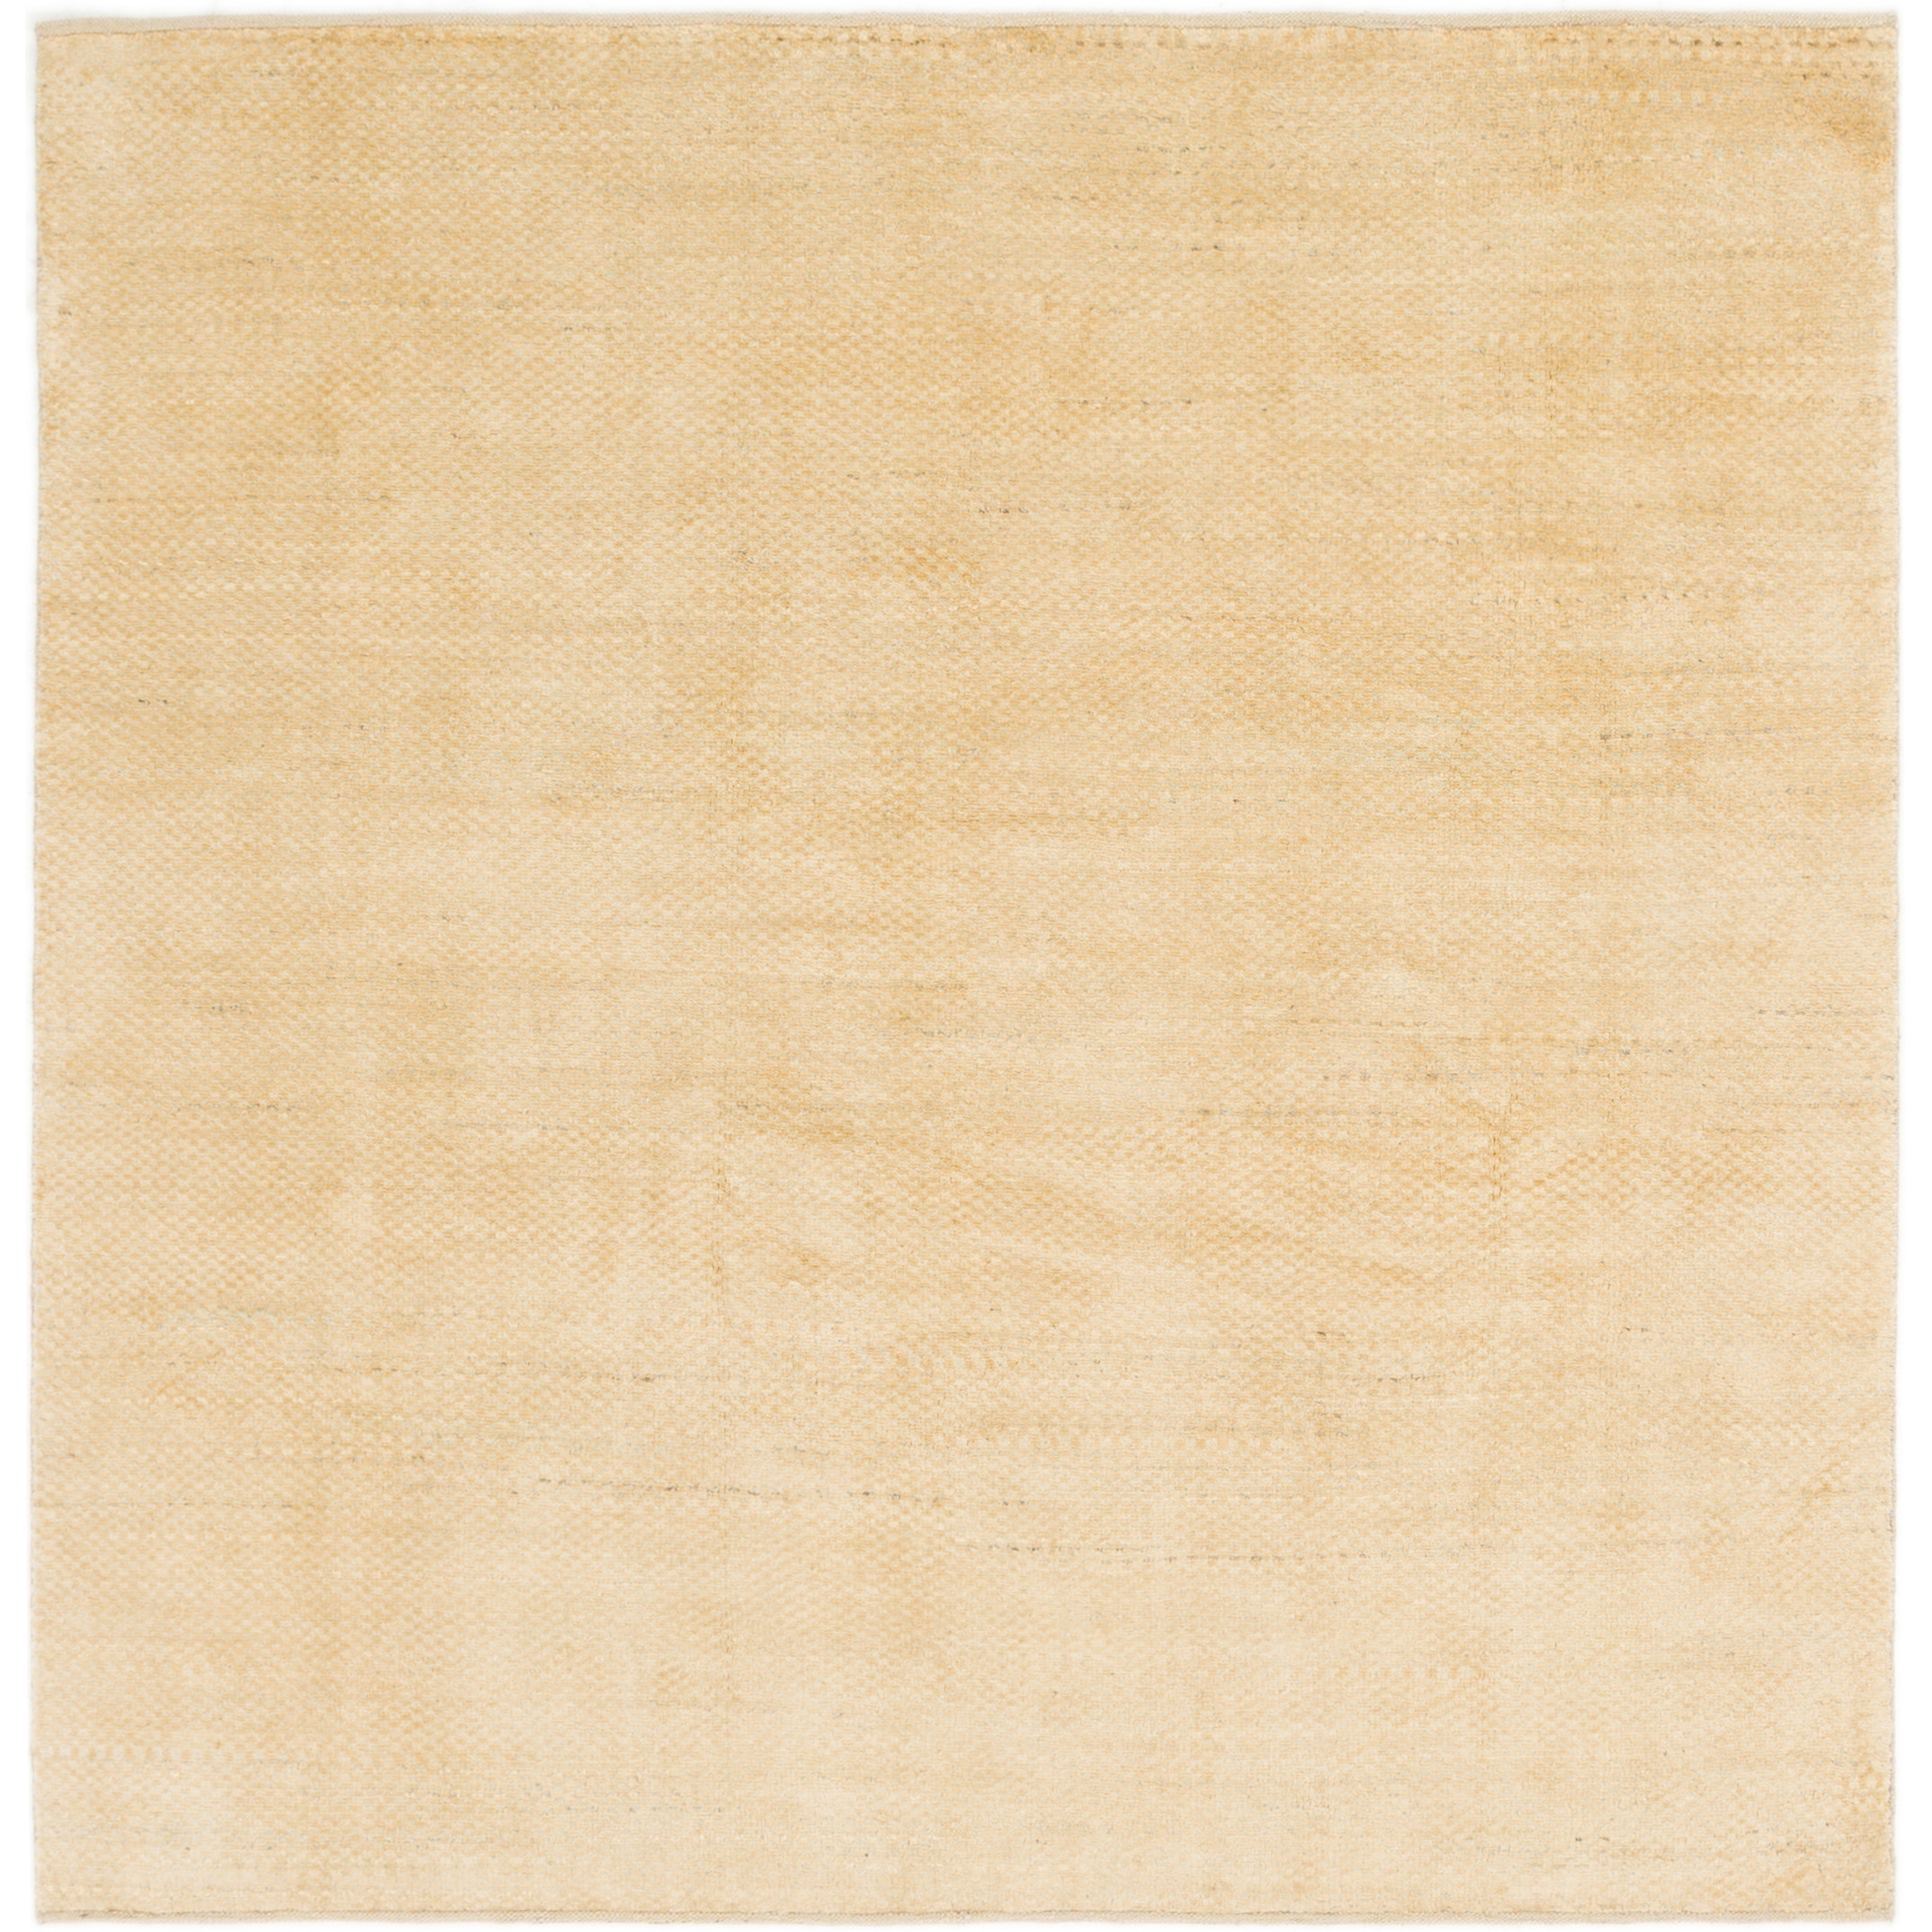 Hand Knotted Kashkuli Gabbeh Wool Square Rug - 6 6 x 6 6 (Cream - 6 6 x 6 6)